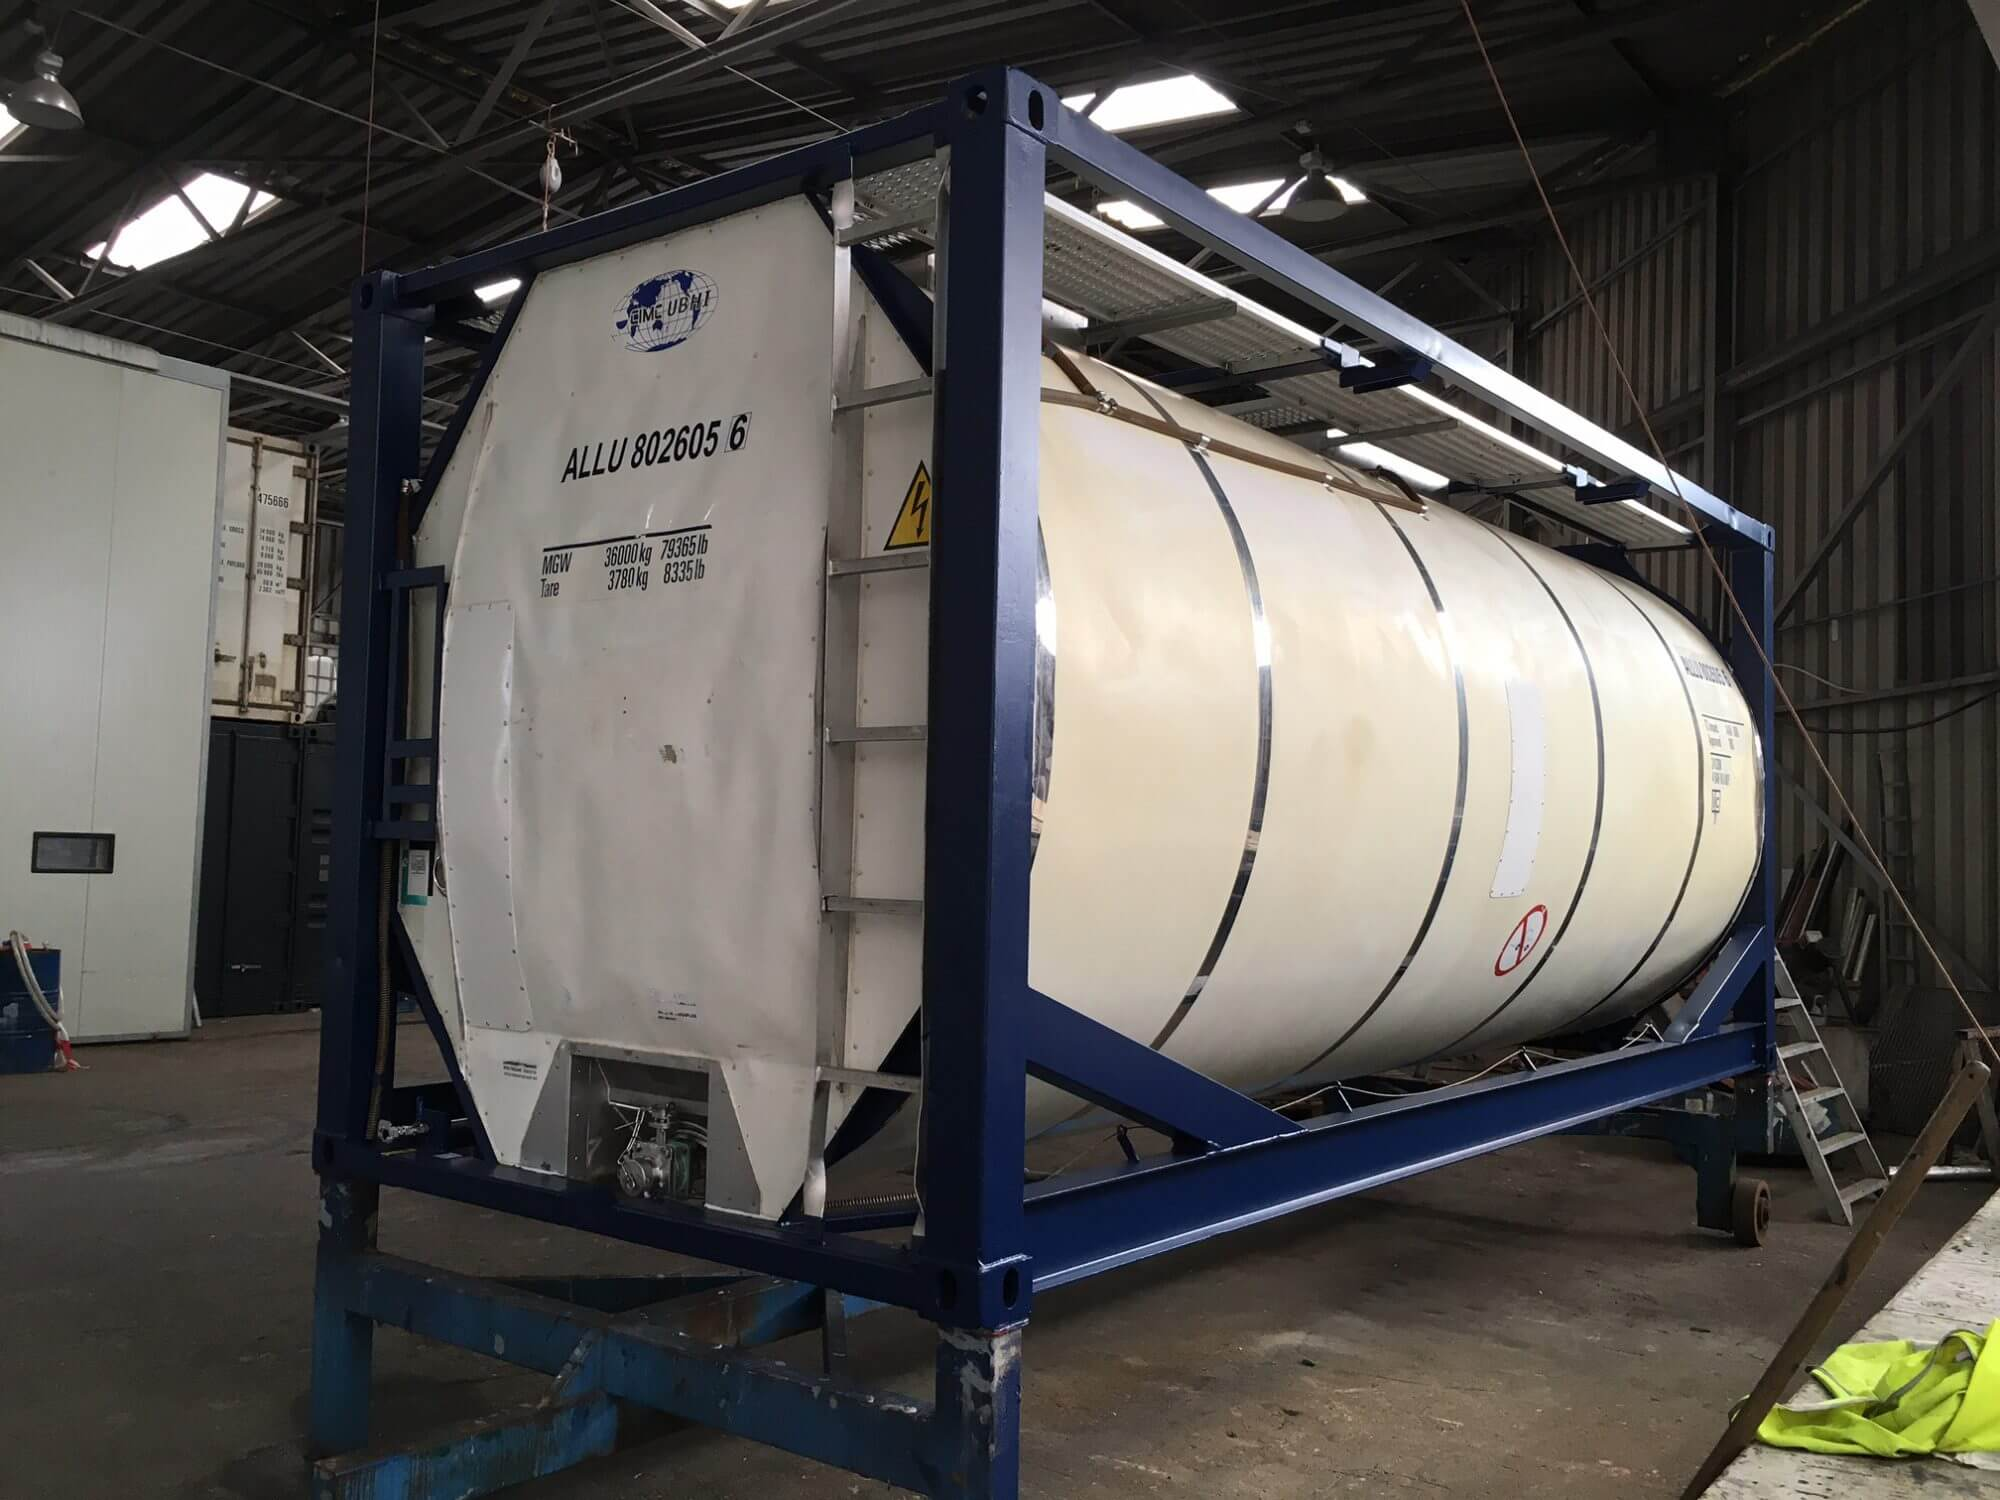 Alconet has secondhand tank containers for sale